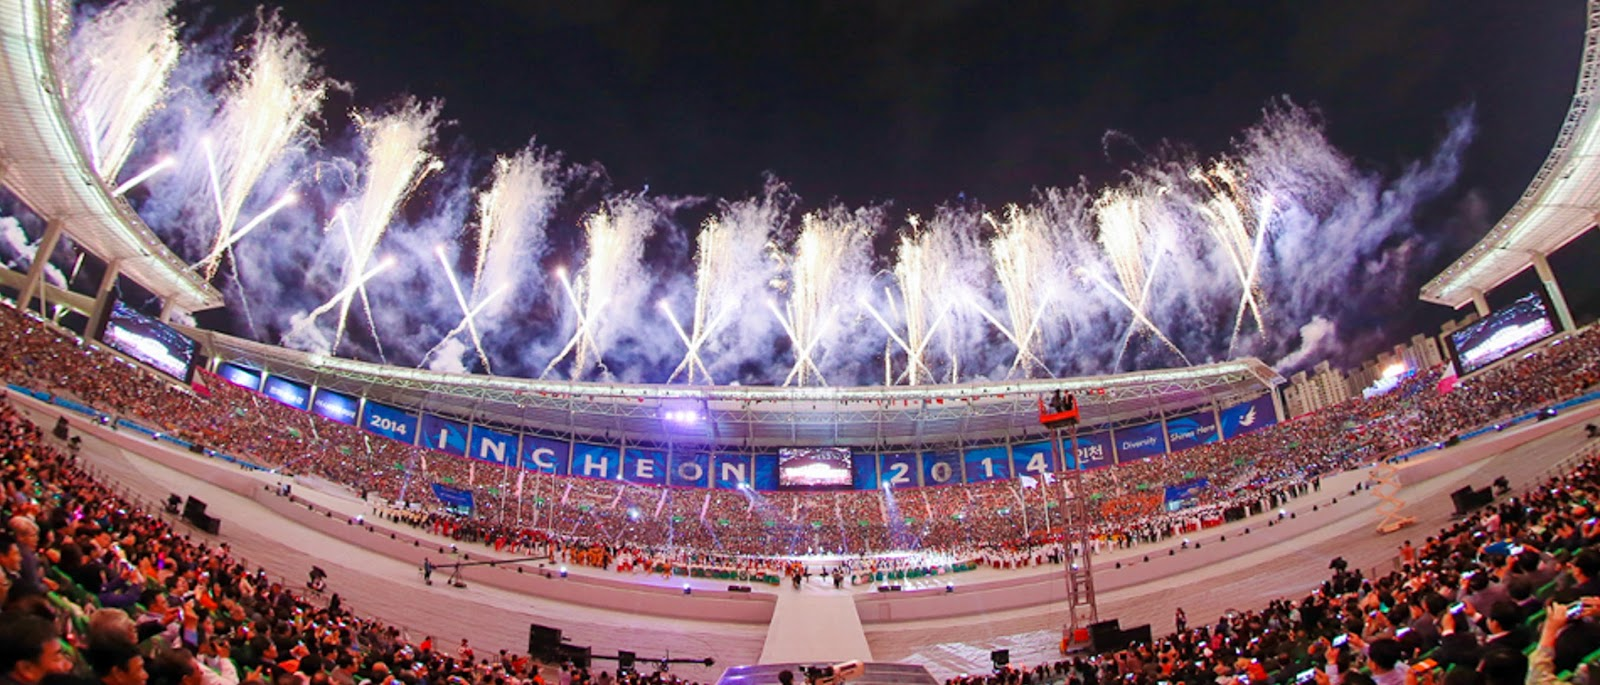 Fireworks at 2014 Incheon Asian Games Open Ceremony